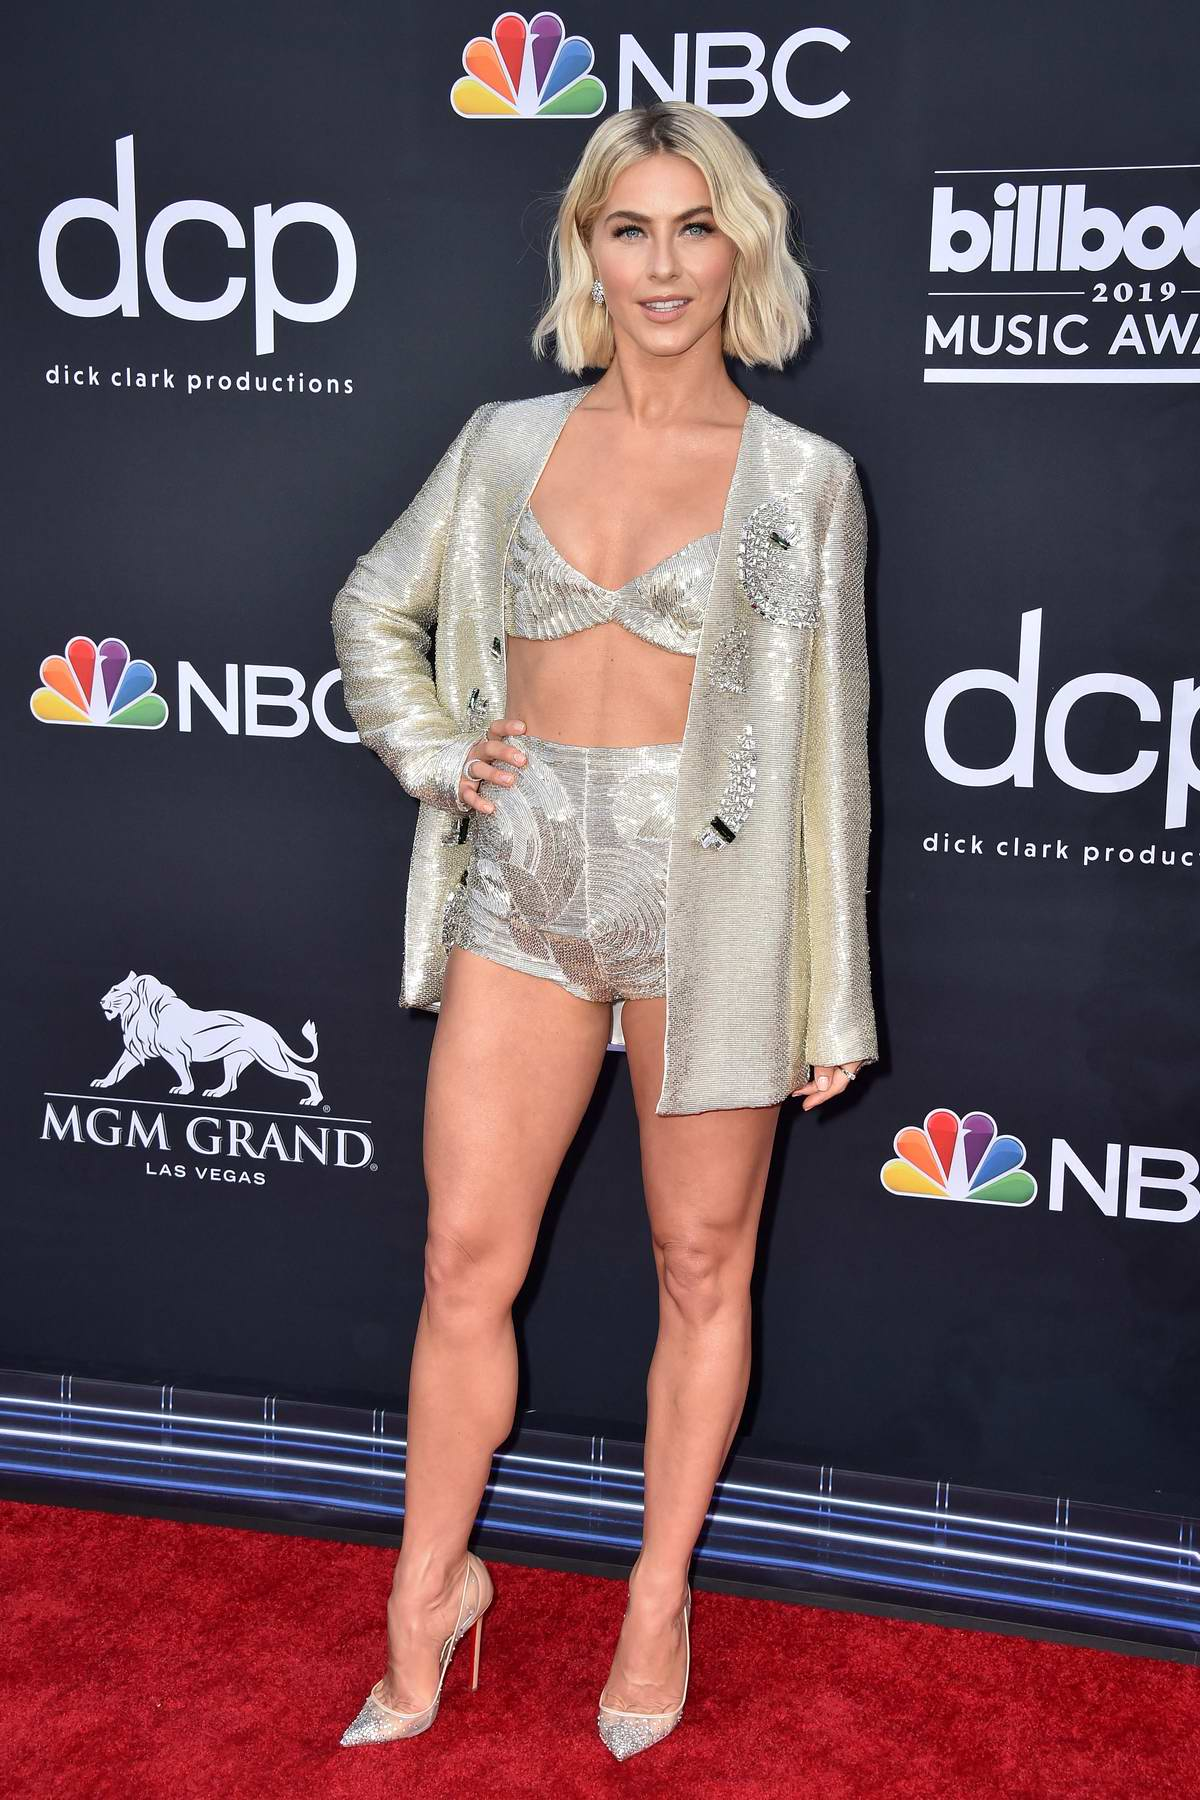 Julianne Hough attends the 2019 Billboard Music Awards at MGM Grand Garden Arena in Las Vegas, Nevada